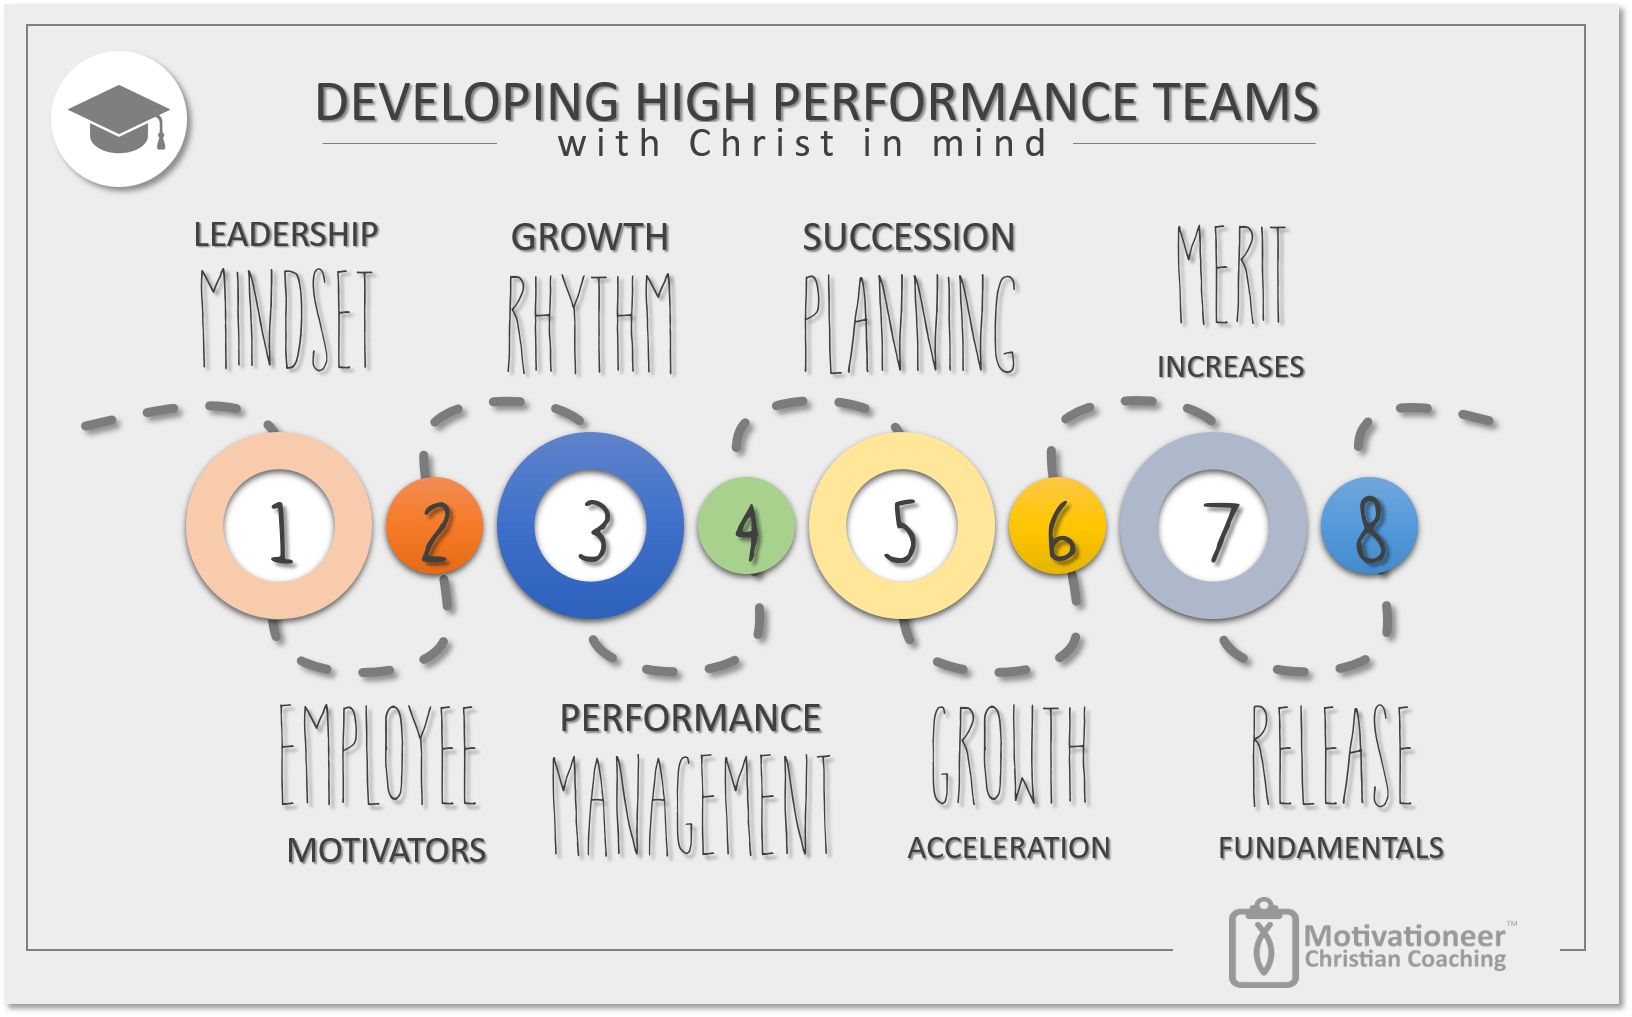 Developing High Performance Teams with Christ in Mind